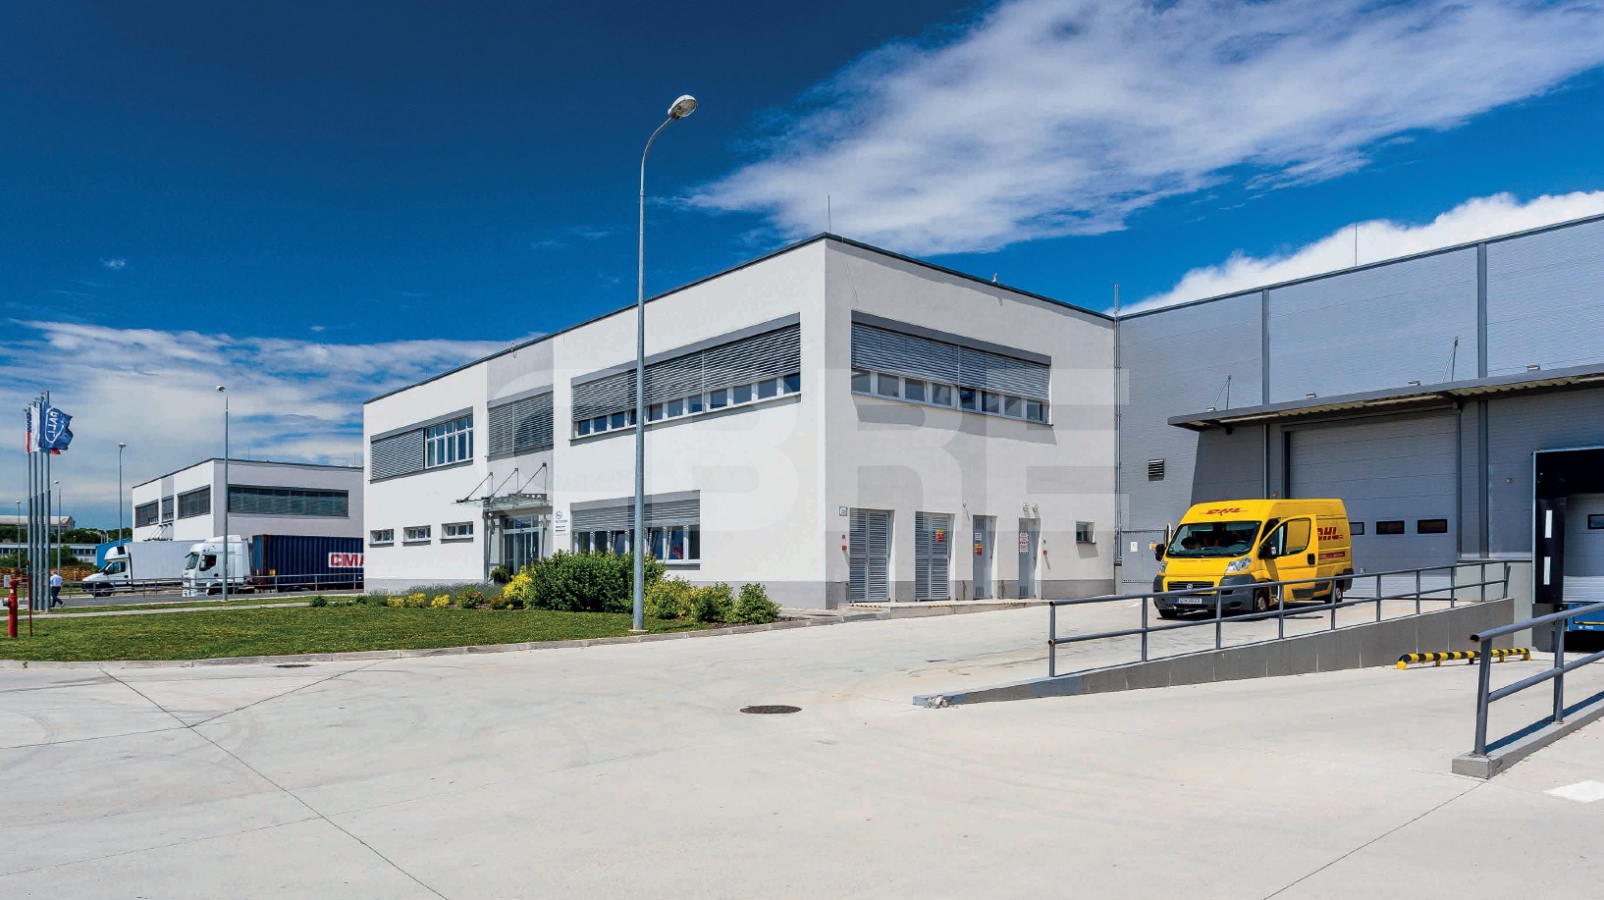 CEHIP Vrable - Hall 4, Nitra Region, Vráble | Warehouses for rent or sale by CBRE | 1